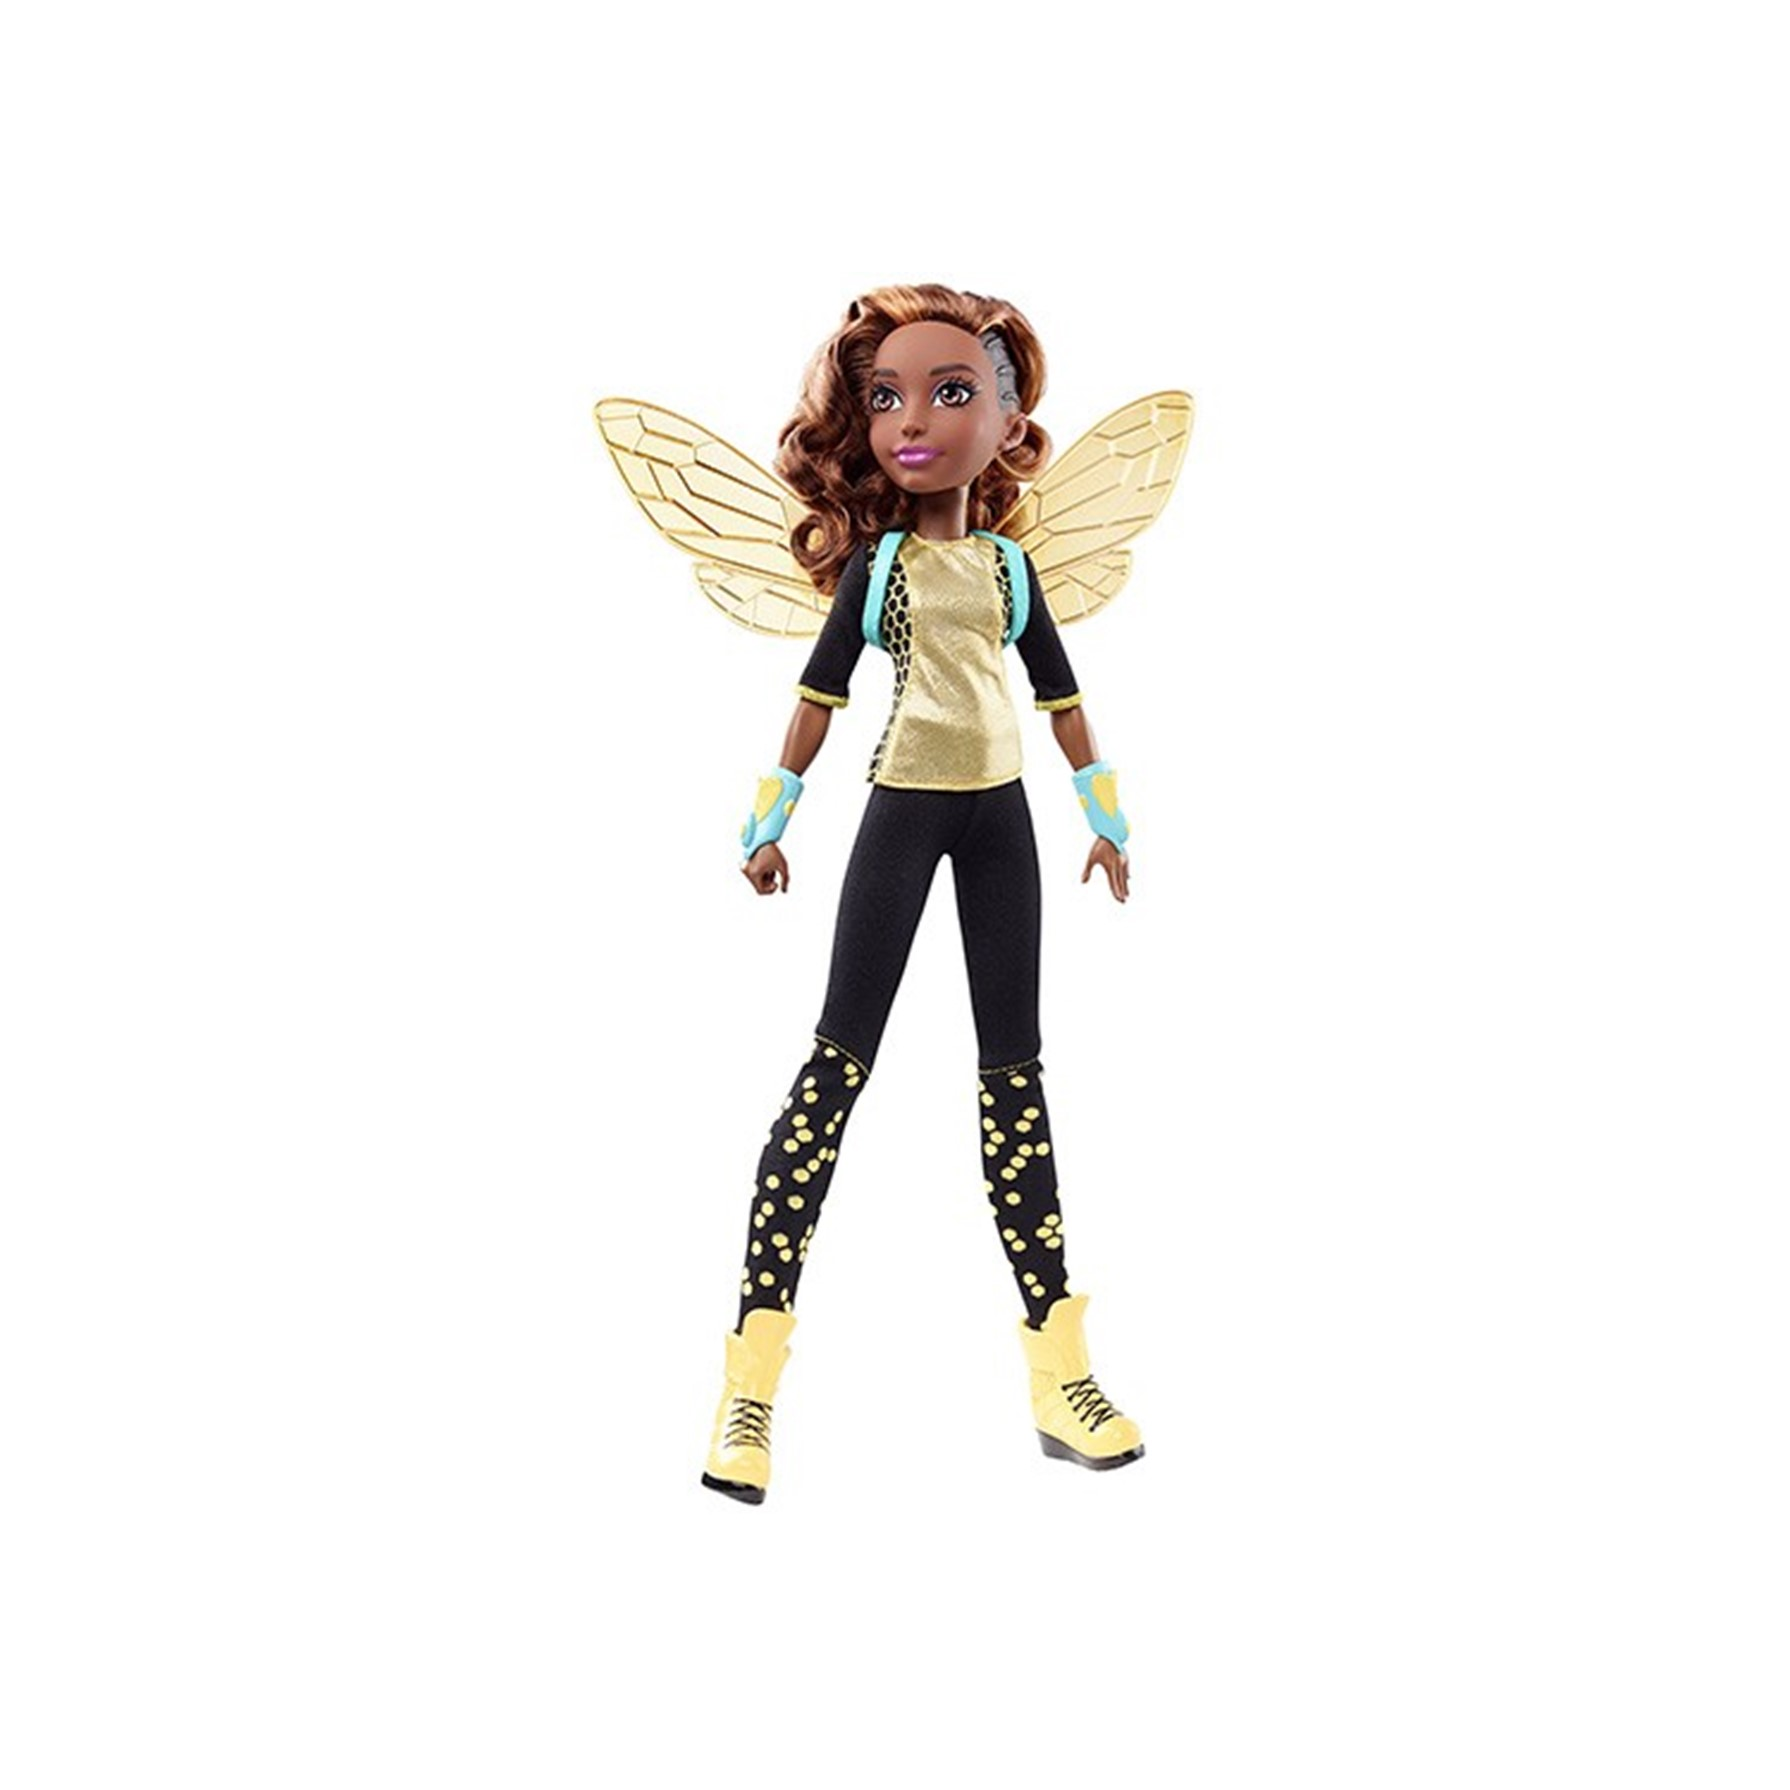 Super Hero Girl Bumble Bee Muñeca